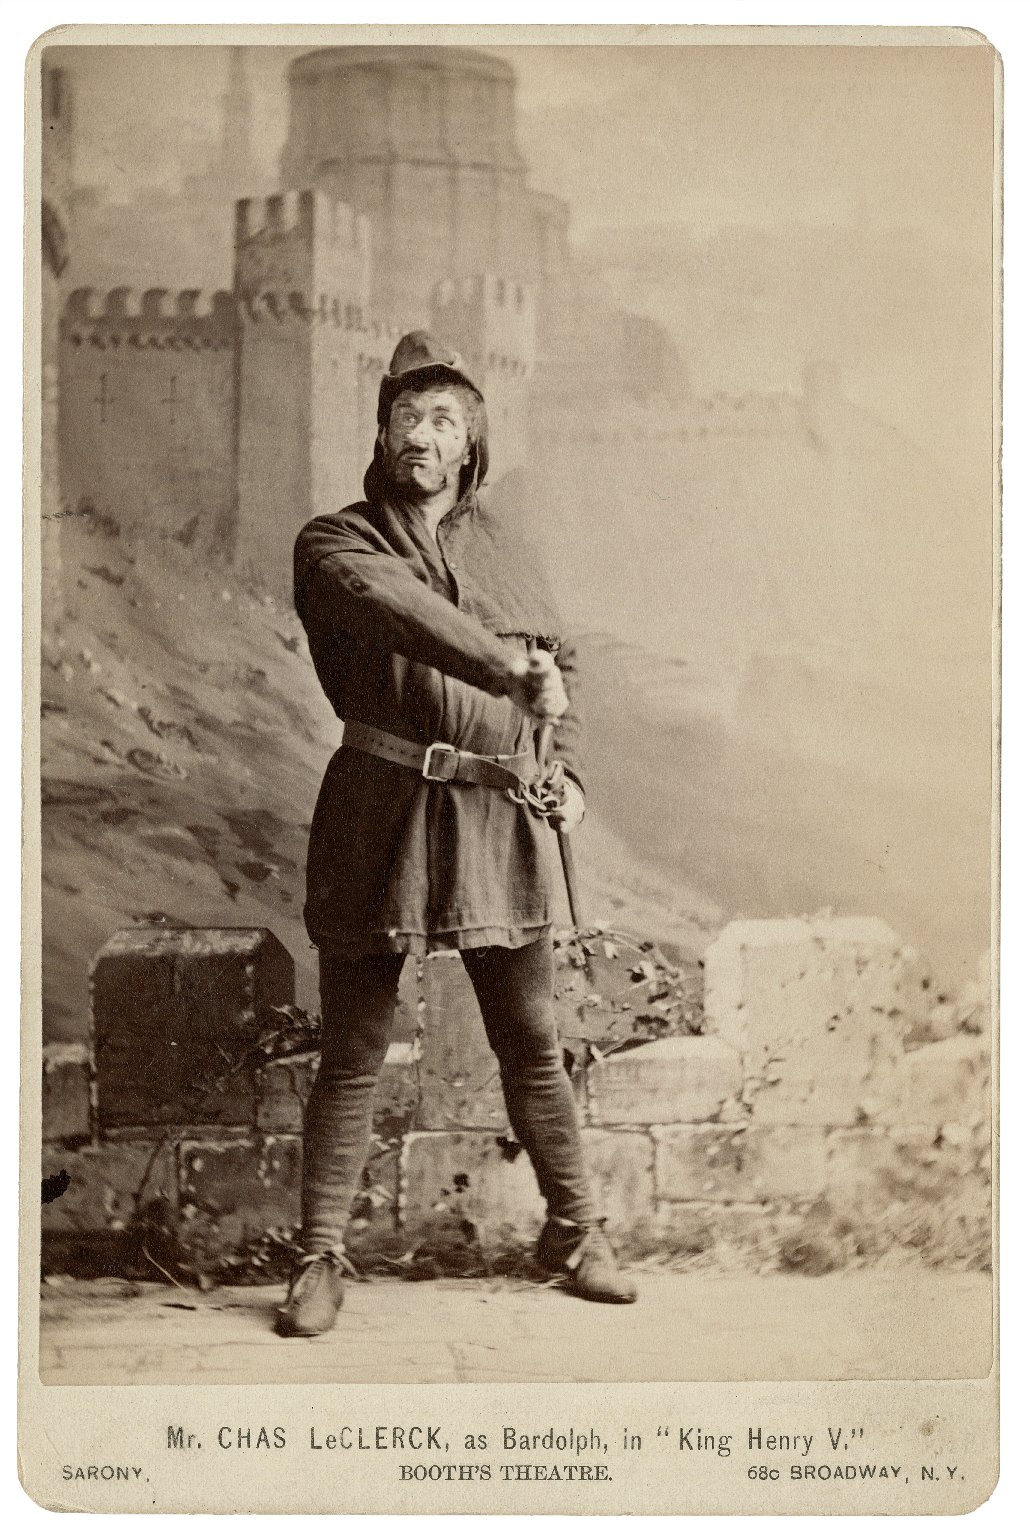 Mr. Charles LeClercq, as Bardolph, in King Henry V [by Shakespeare] Booth's Theatre [graphic] / Sarony.